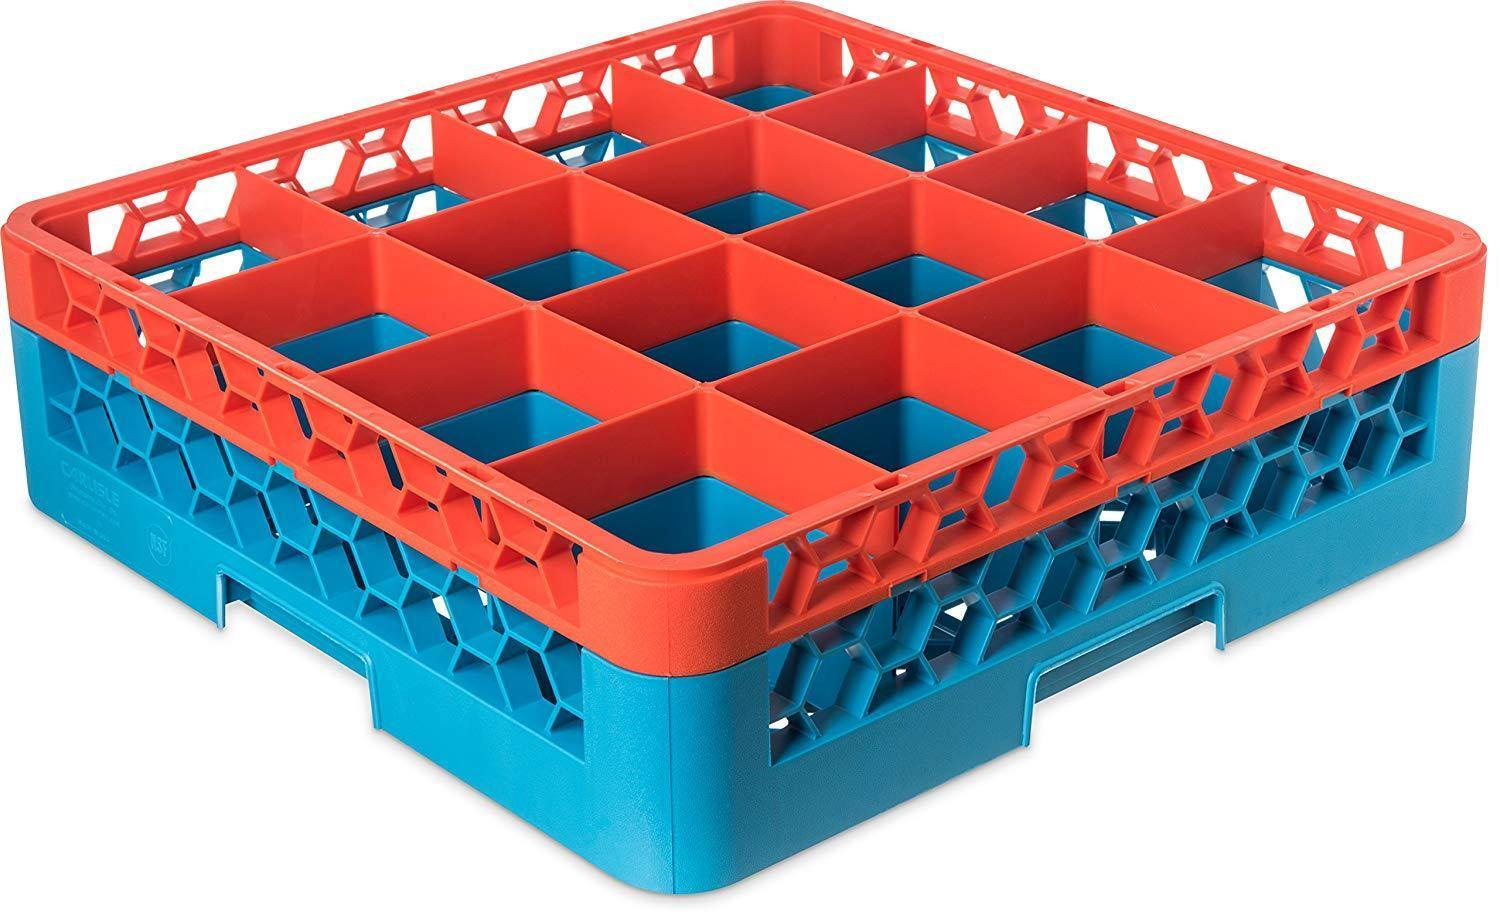 Carlisle RG16-1C412 Opticlean 16 Compartments Orange Color-Coded Glass Rack with 1 Extender